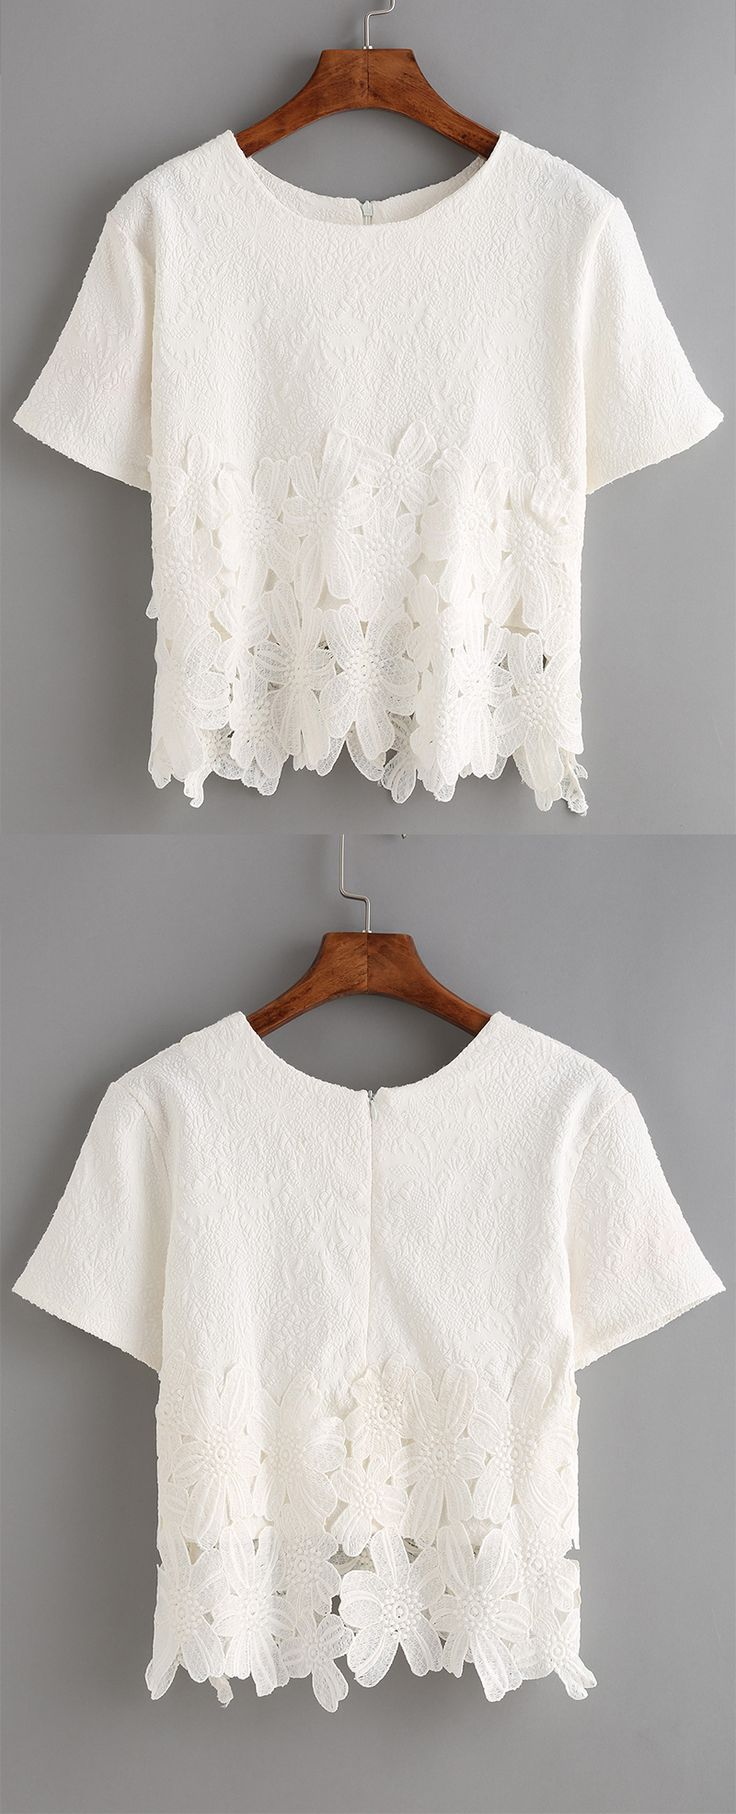 17 Best ideas about White Blouses on Pinterest | Casual chic ...